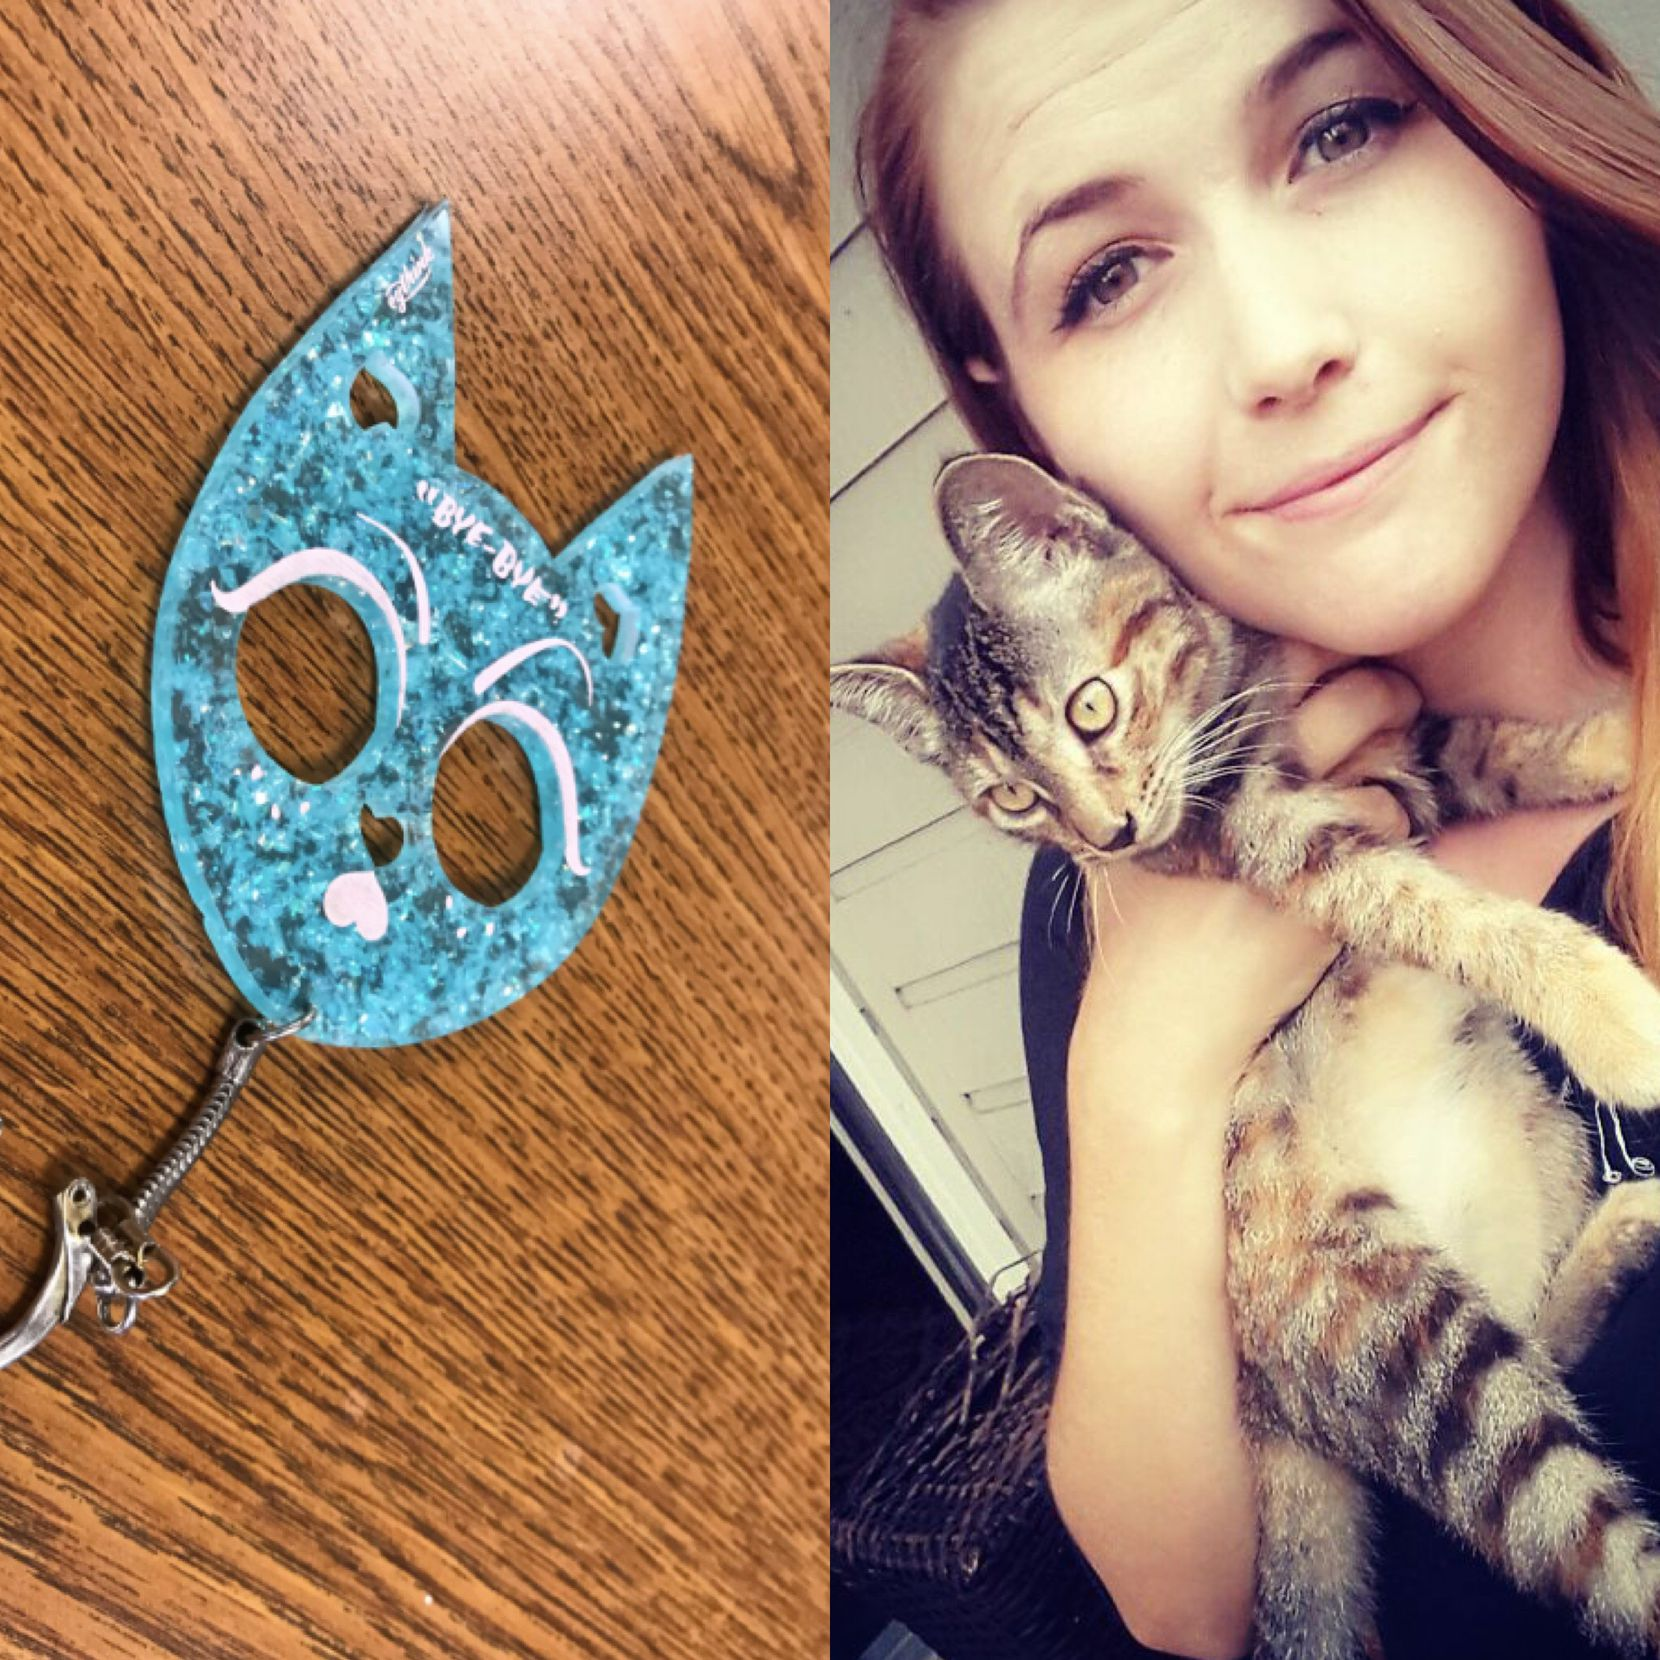 Can You Really Be Arrested For Having One Of Those Kitty Key